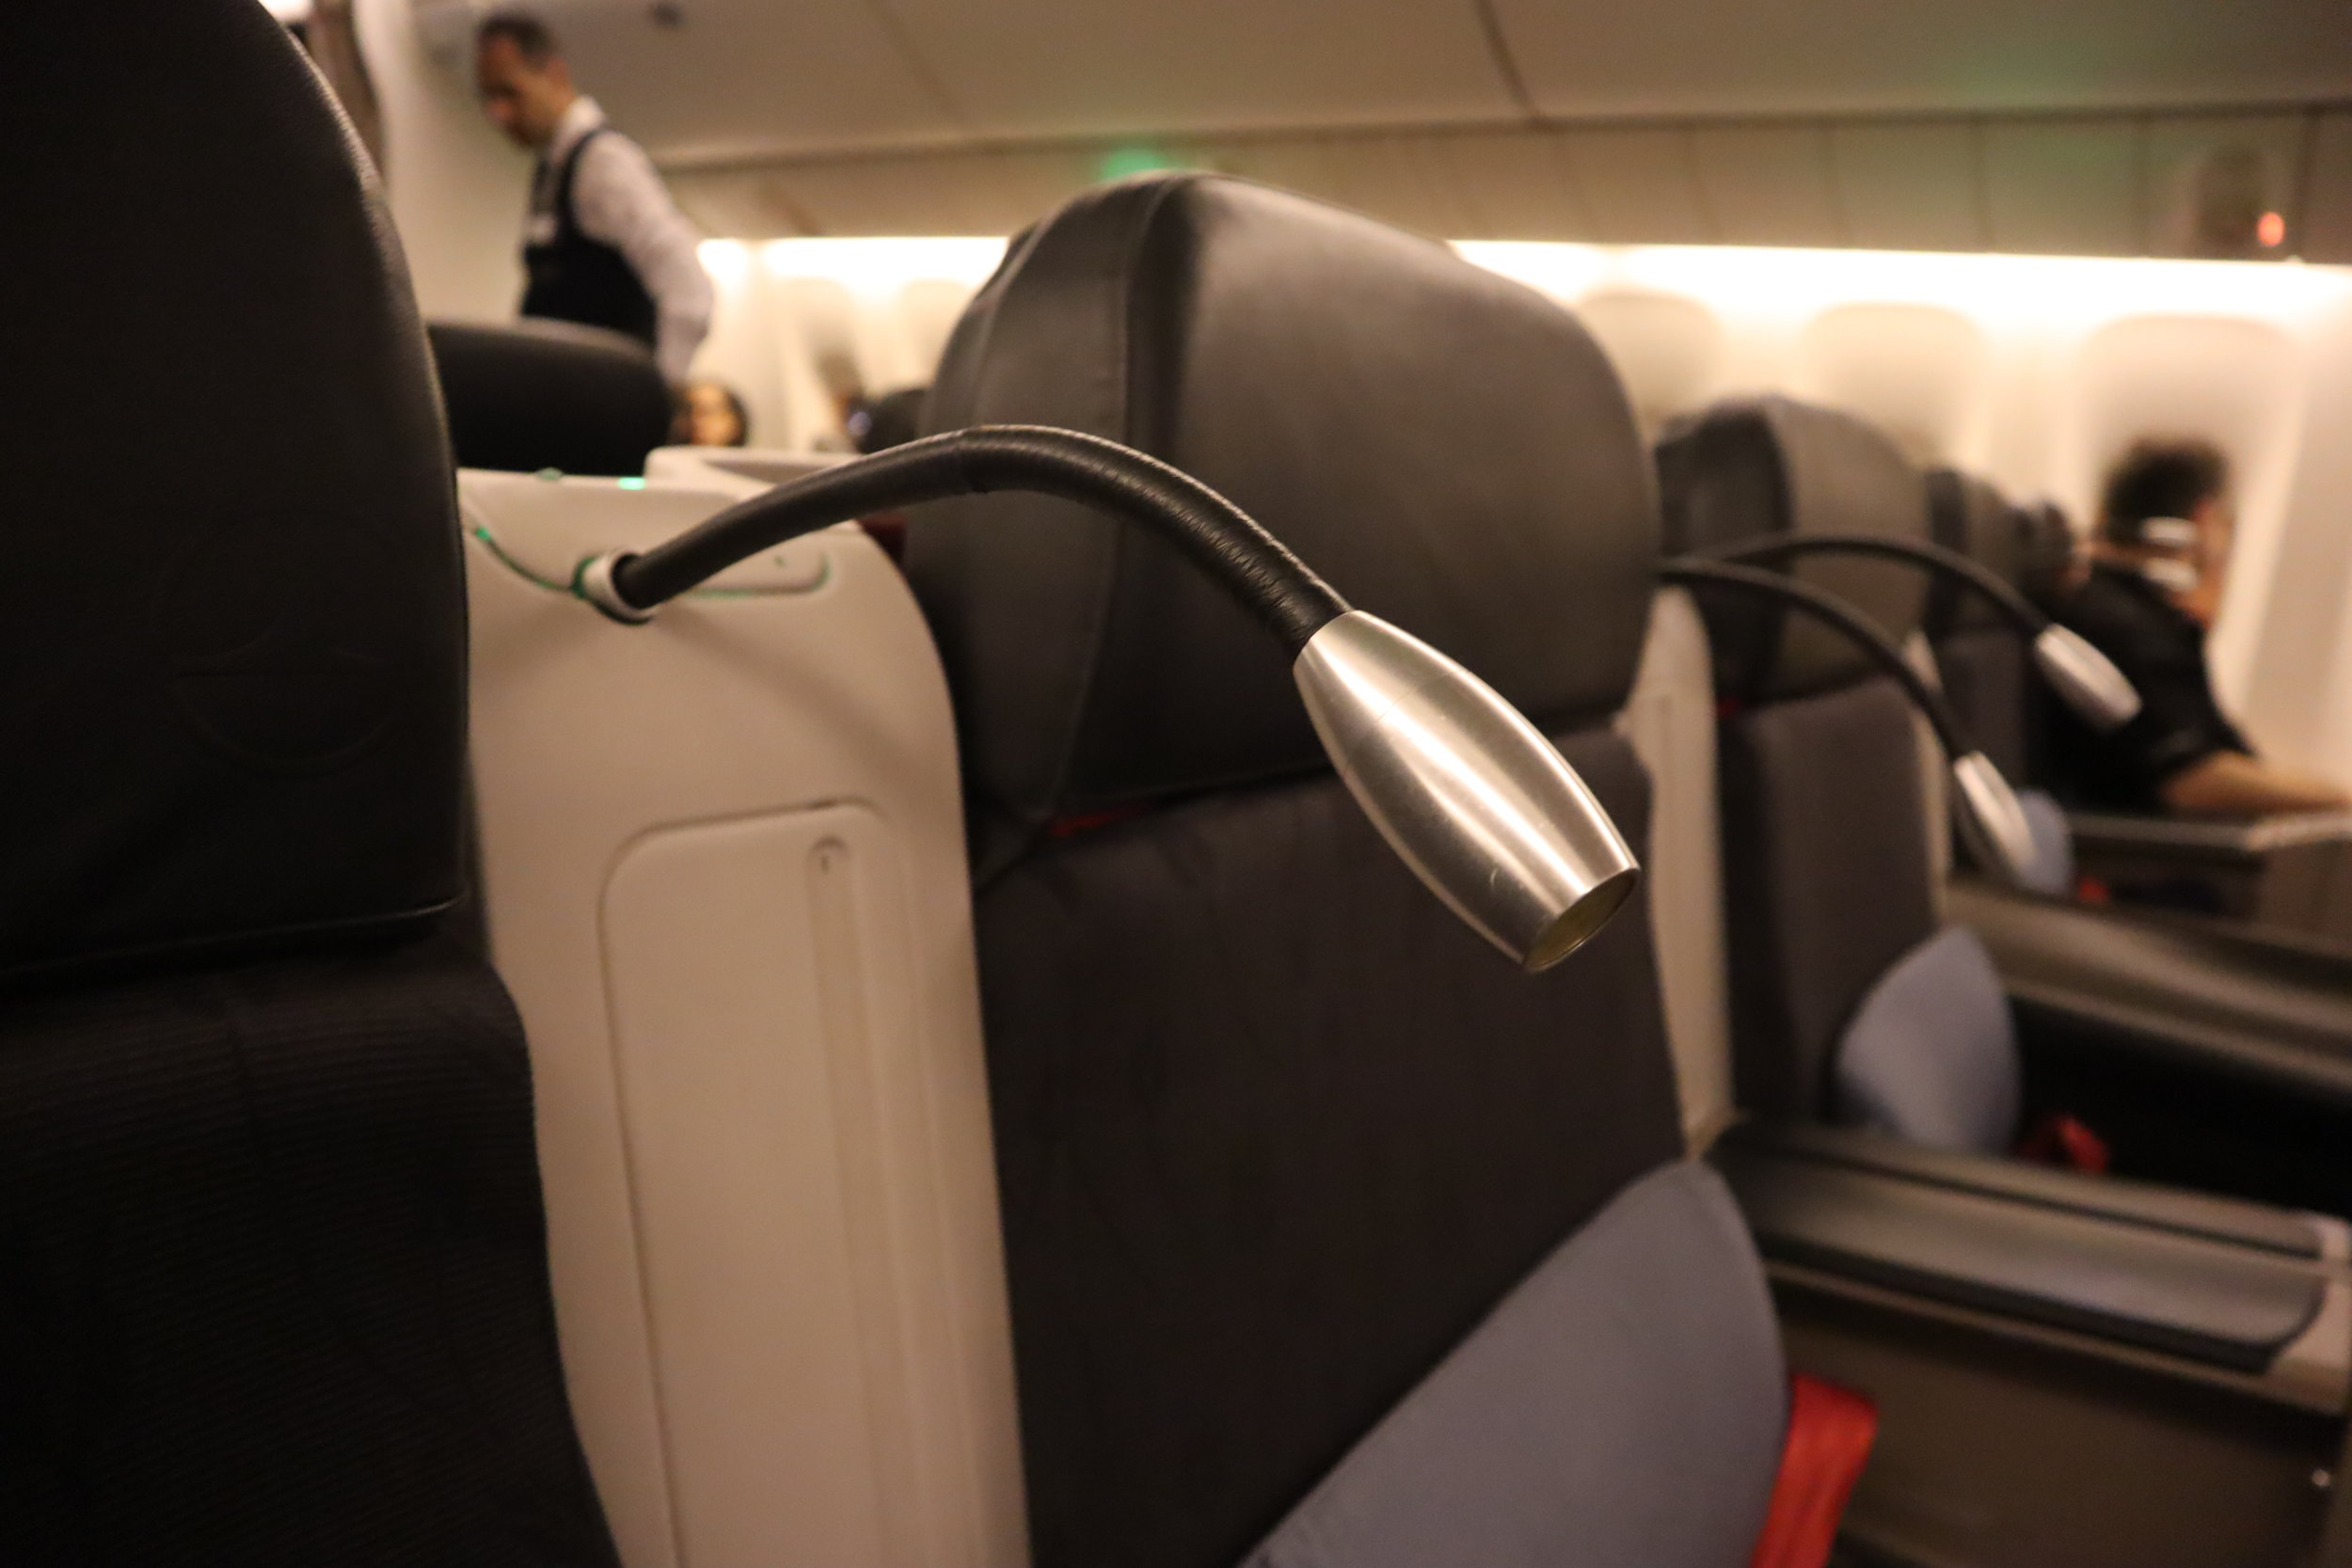 Turkish Airlines 777 business class – Reading light